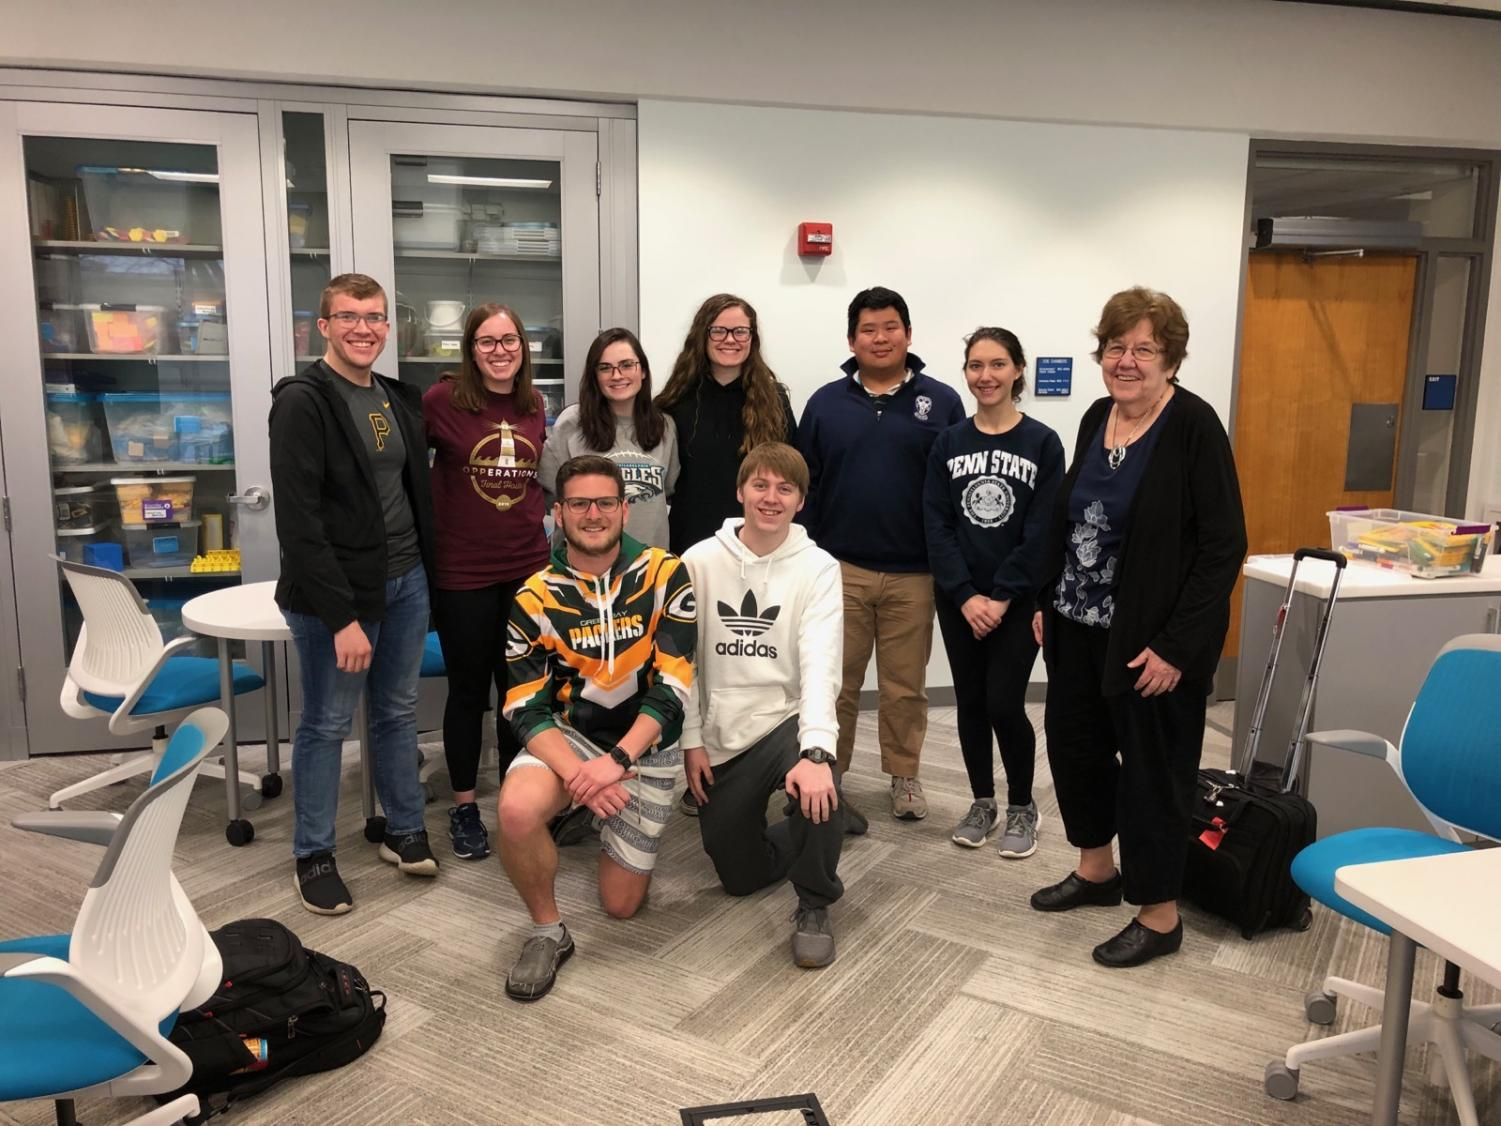 Students from the math education program at PSU University Park were guests in TAHS math classes. Front Row:  Caleb Marasco, Austin Perkosky Back Row:  Bailey Messelman, Jess Heckler, Kelsey Morris, Spenser Bevins, Anthony Zhang, Laryssa Tricou, Dr. Heid Missing from photo:  Mathew Black